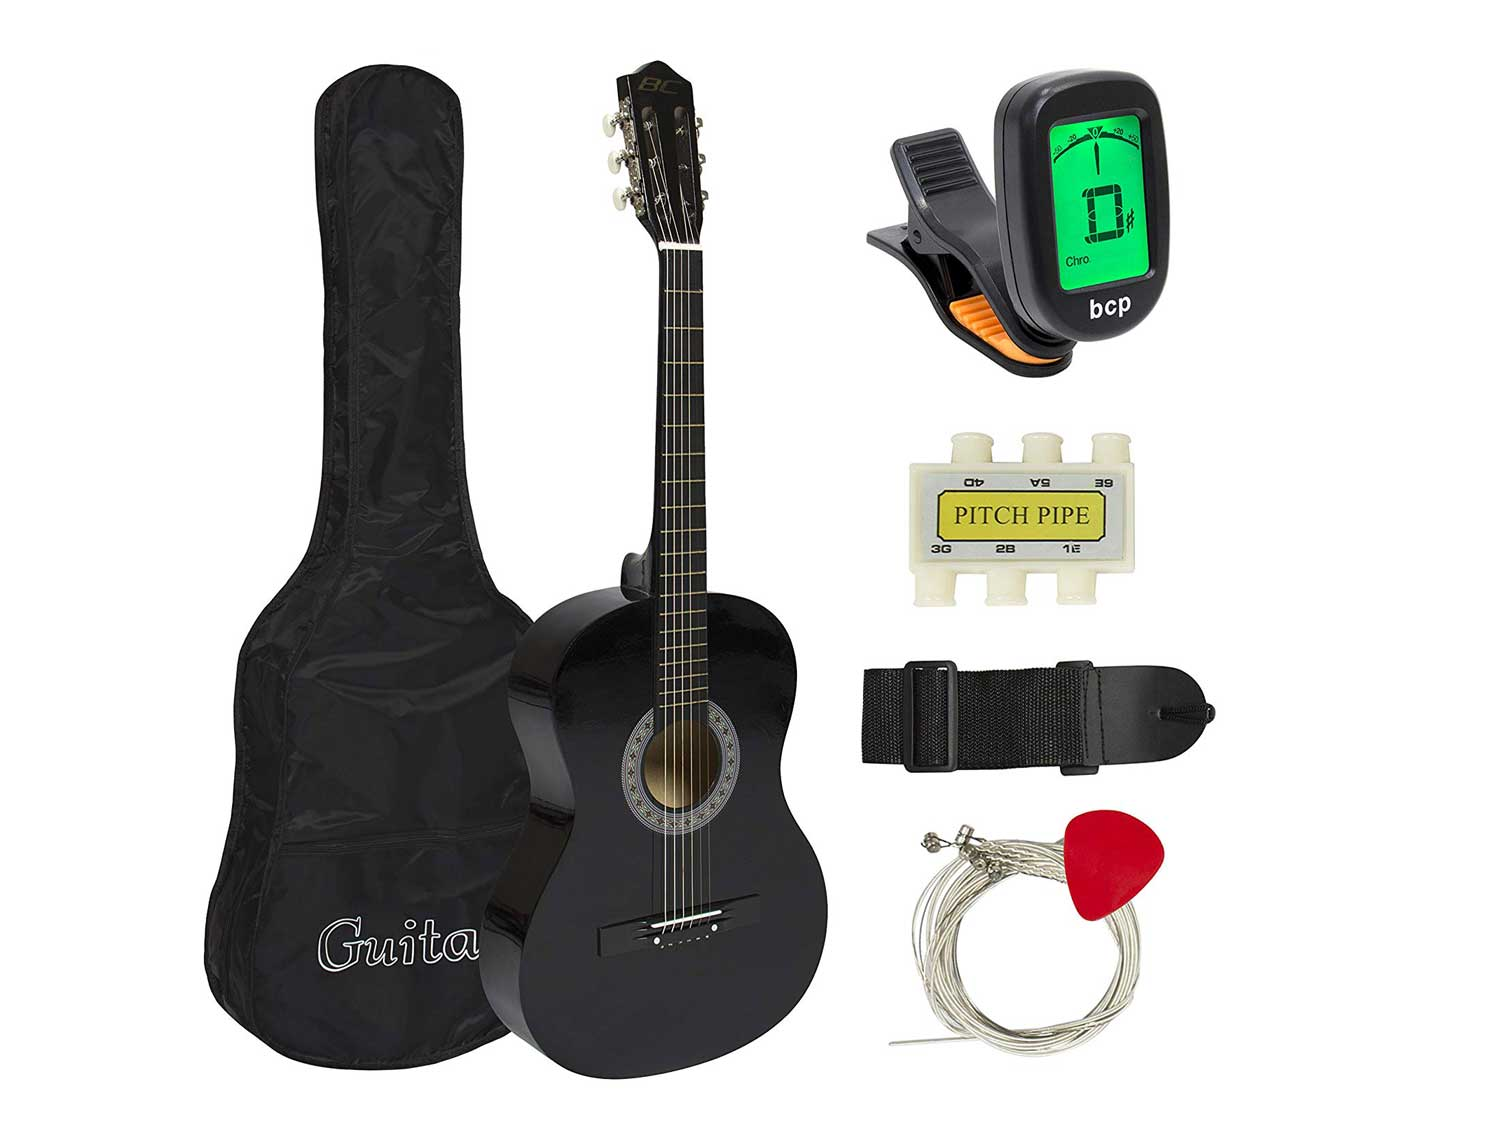 Best Choice Products 38in Beginner Acoustic Guitar Starter Kit w/ Case, Strap